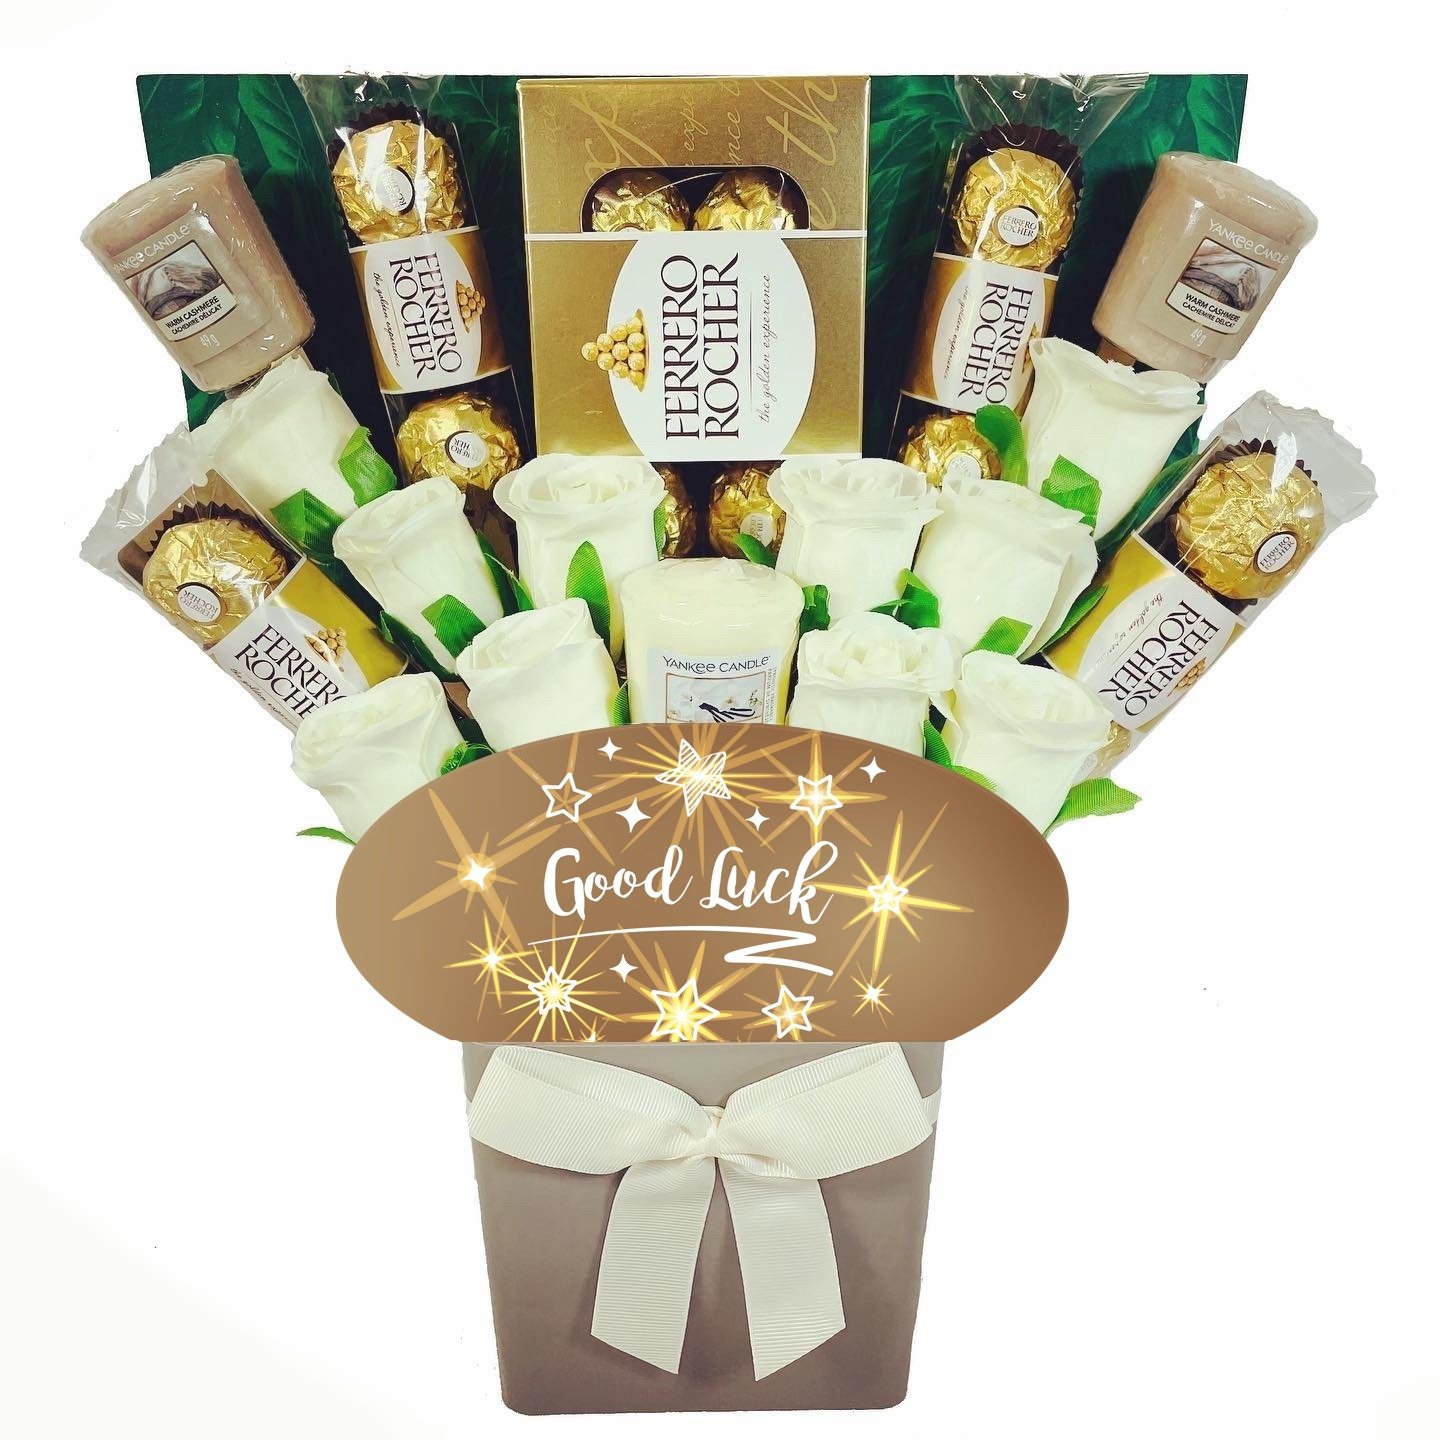 The Good Luck Yankee Candle and Ivory Rose Bouquet